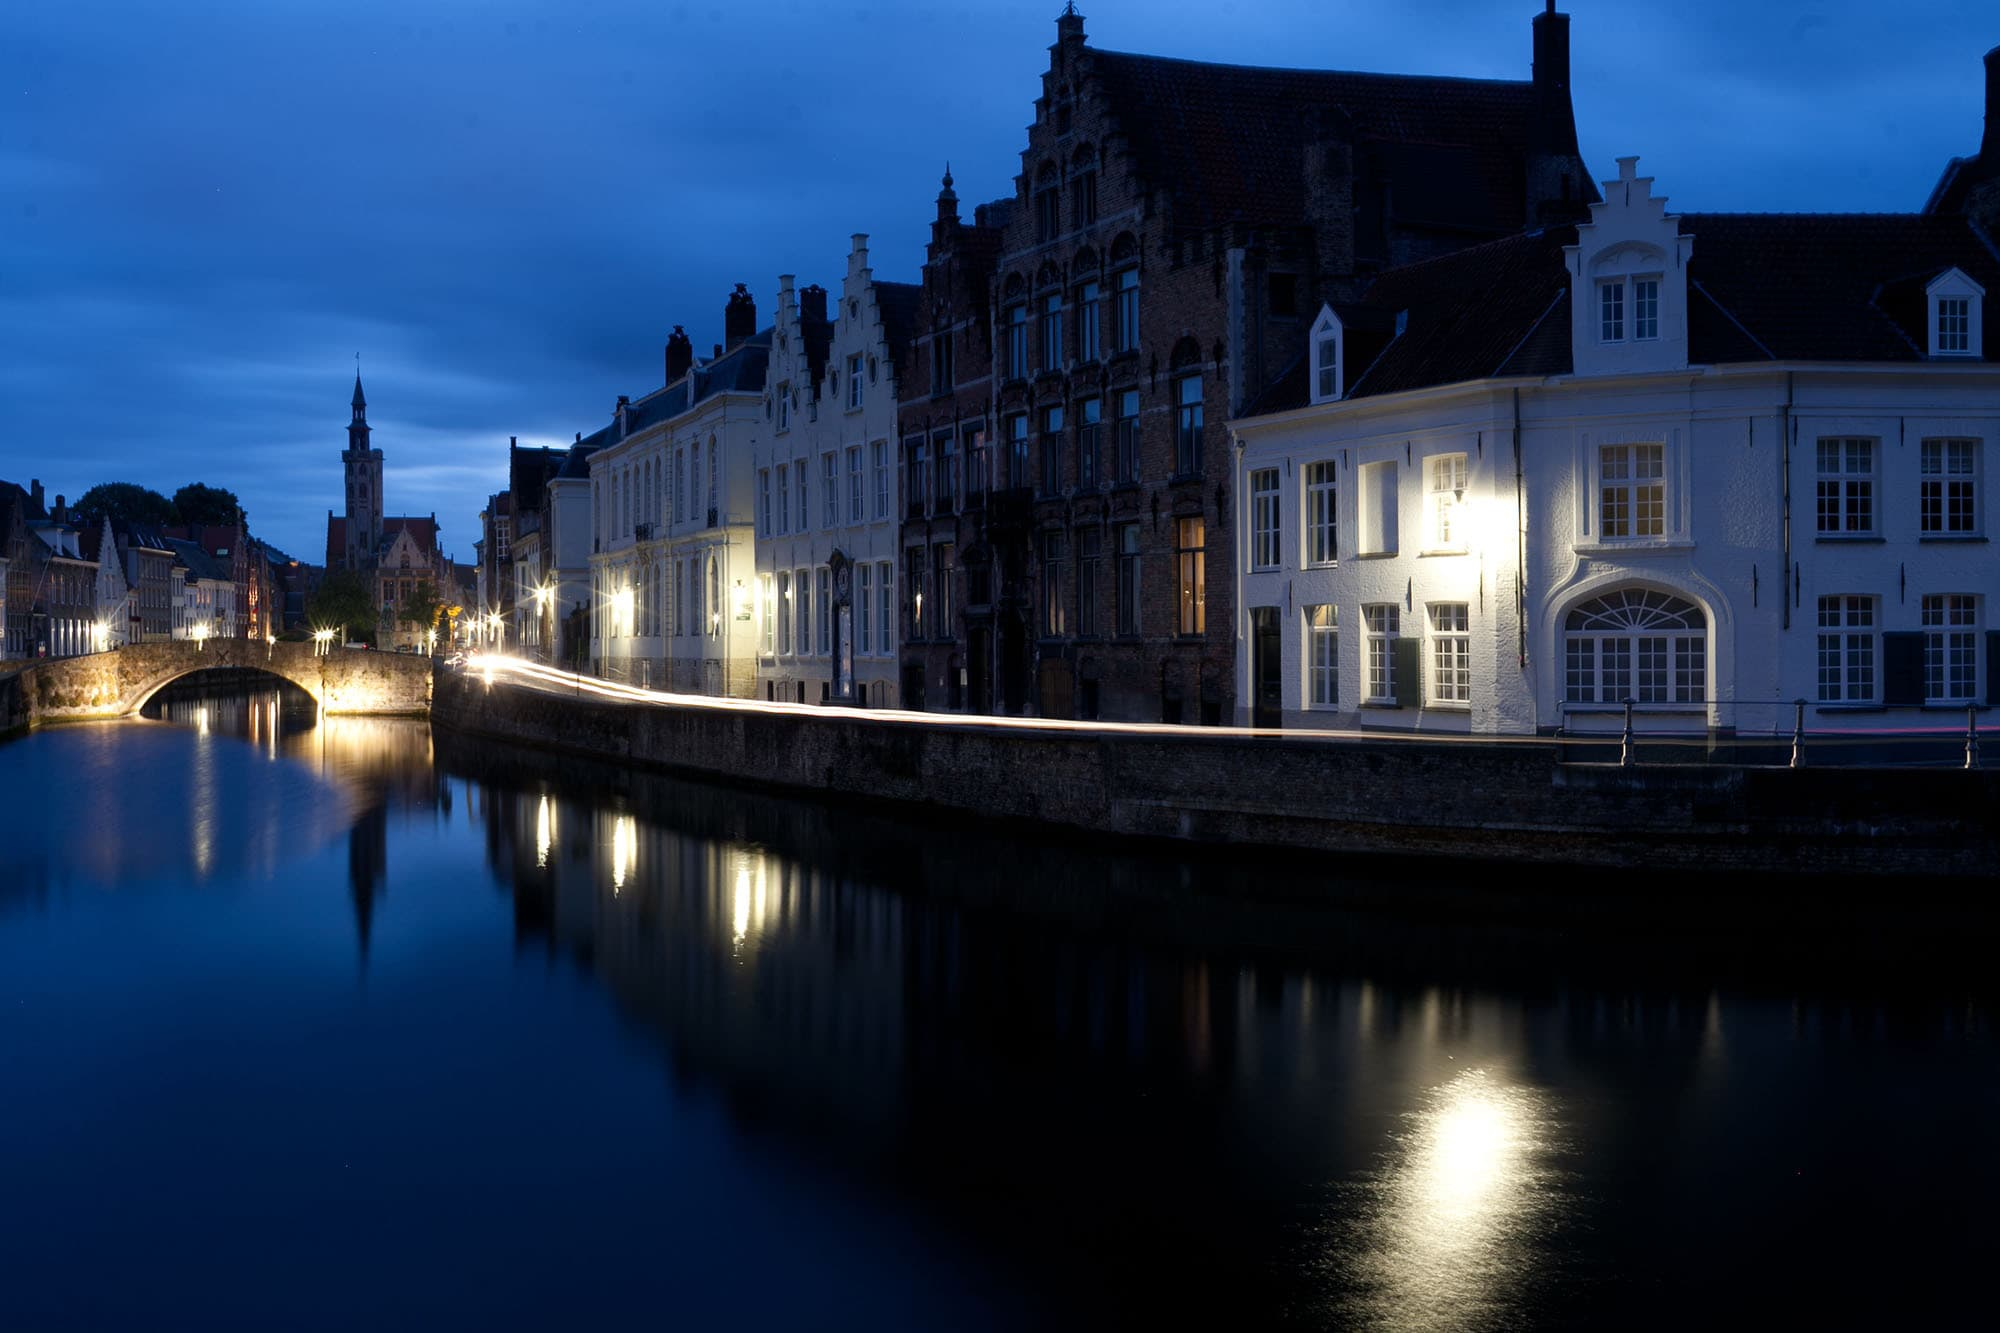 Canals at night in Bruges, Belgium